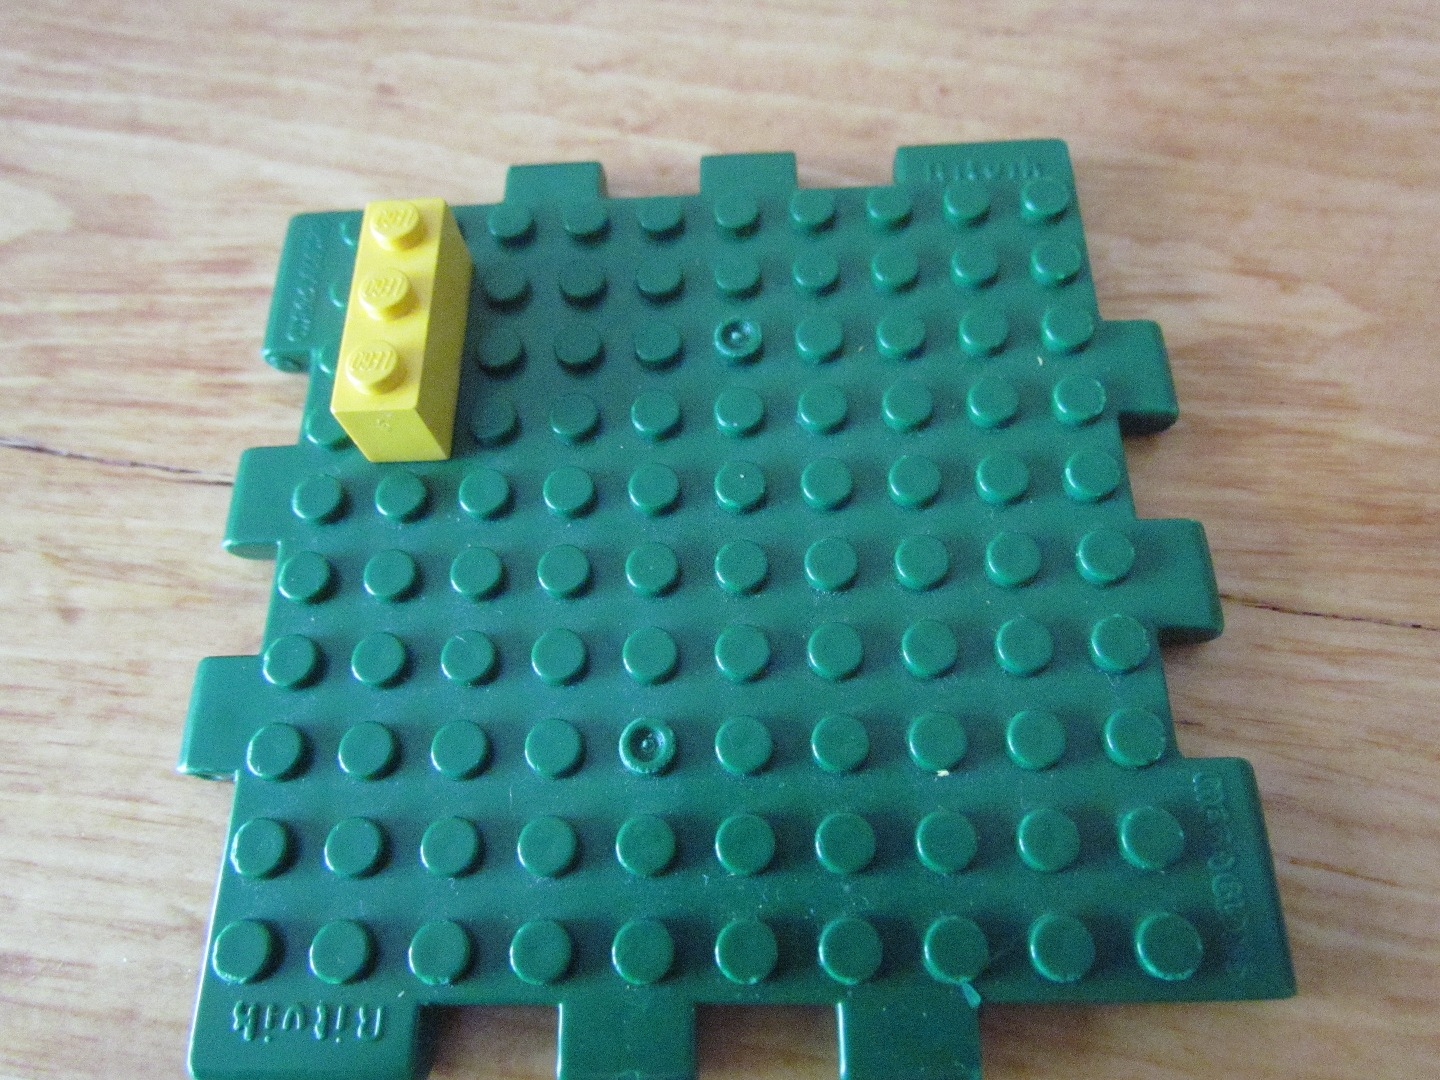 Picture of Tiny Lego Hotel